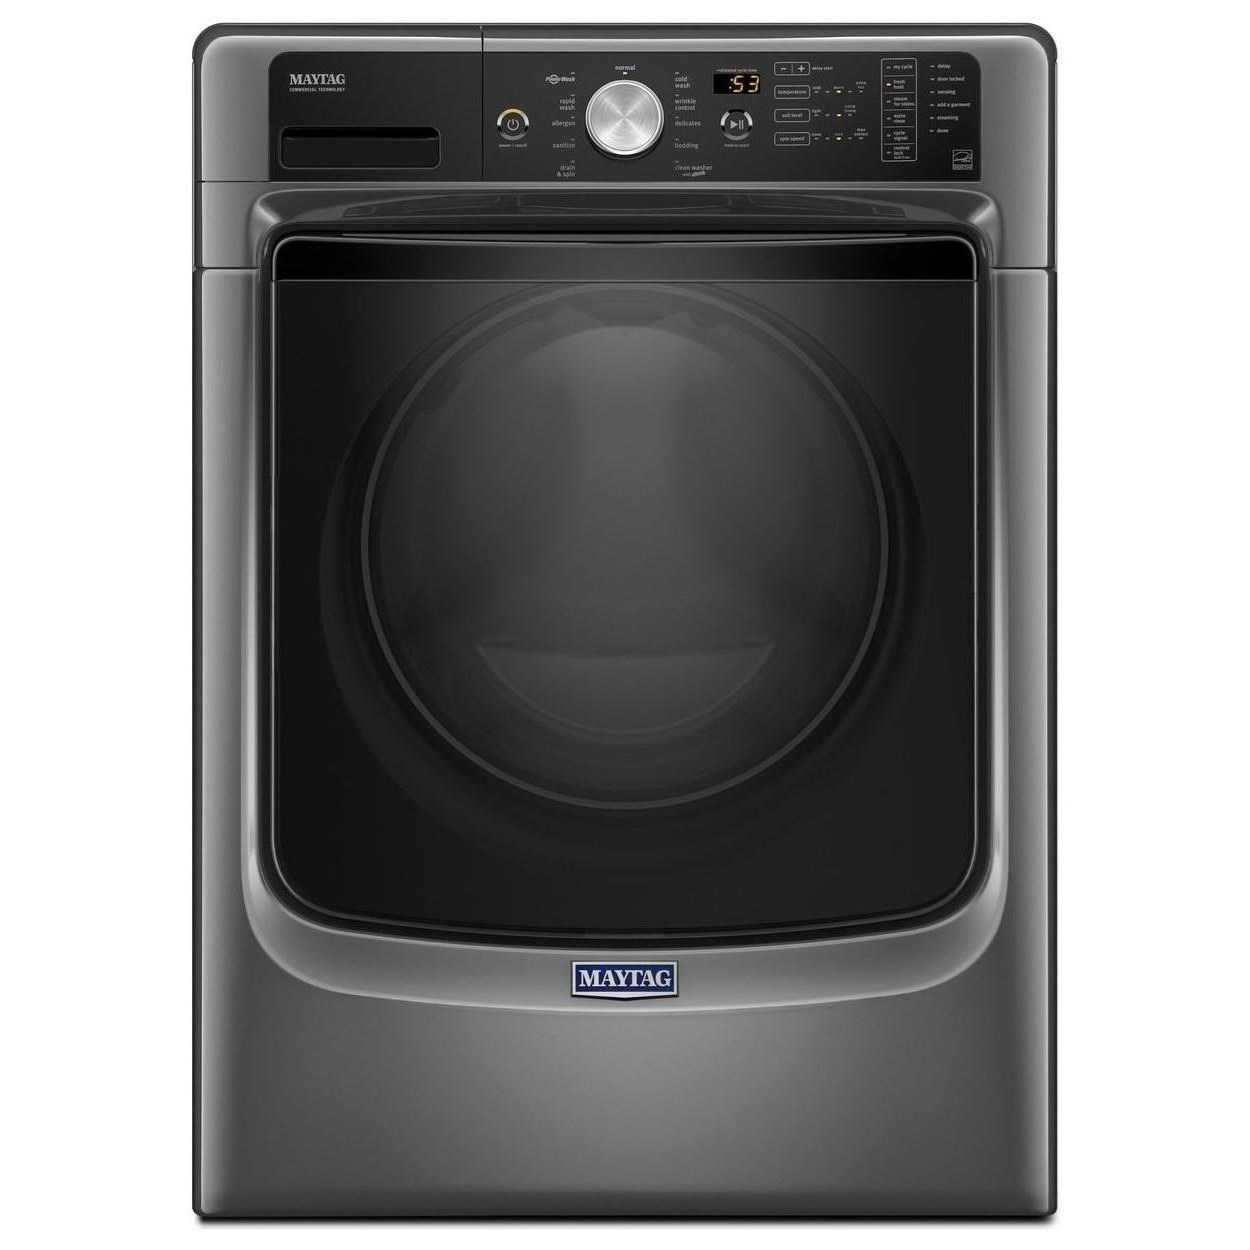 Maytag Front Load Washers 5500 Series 4.5 Cu. Ft. Front Load Washer - Item Number: MHW5500FC